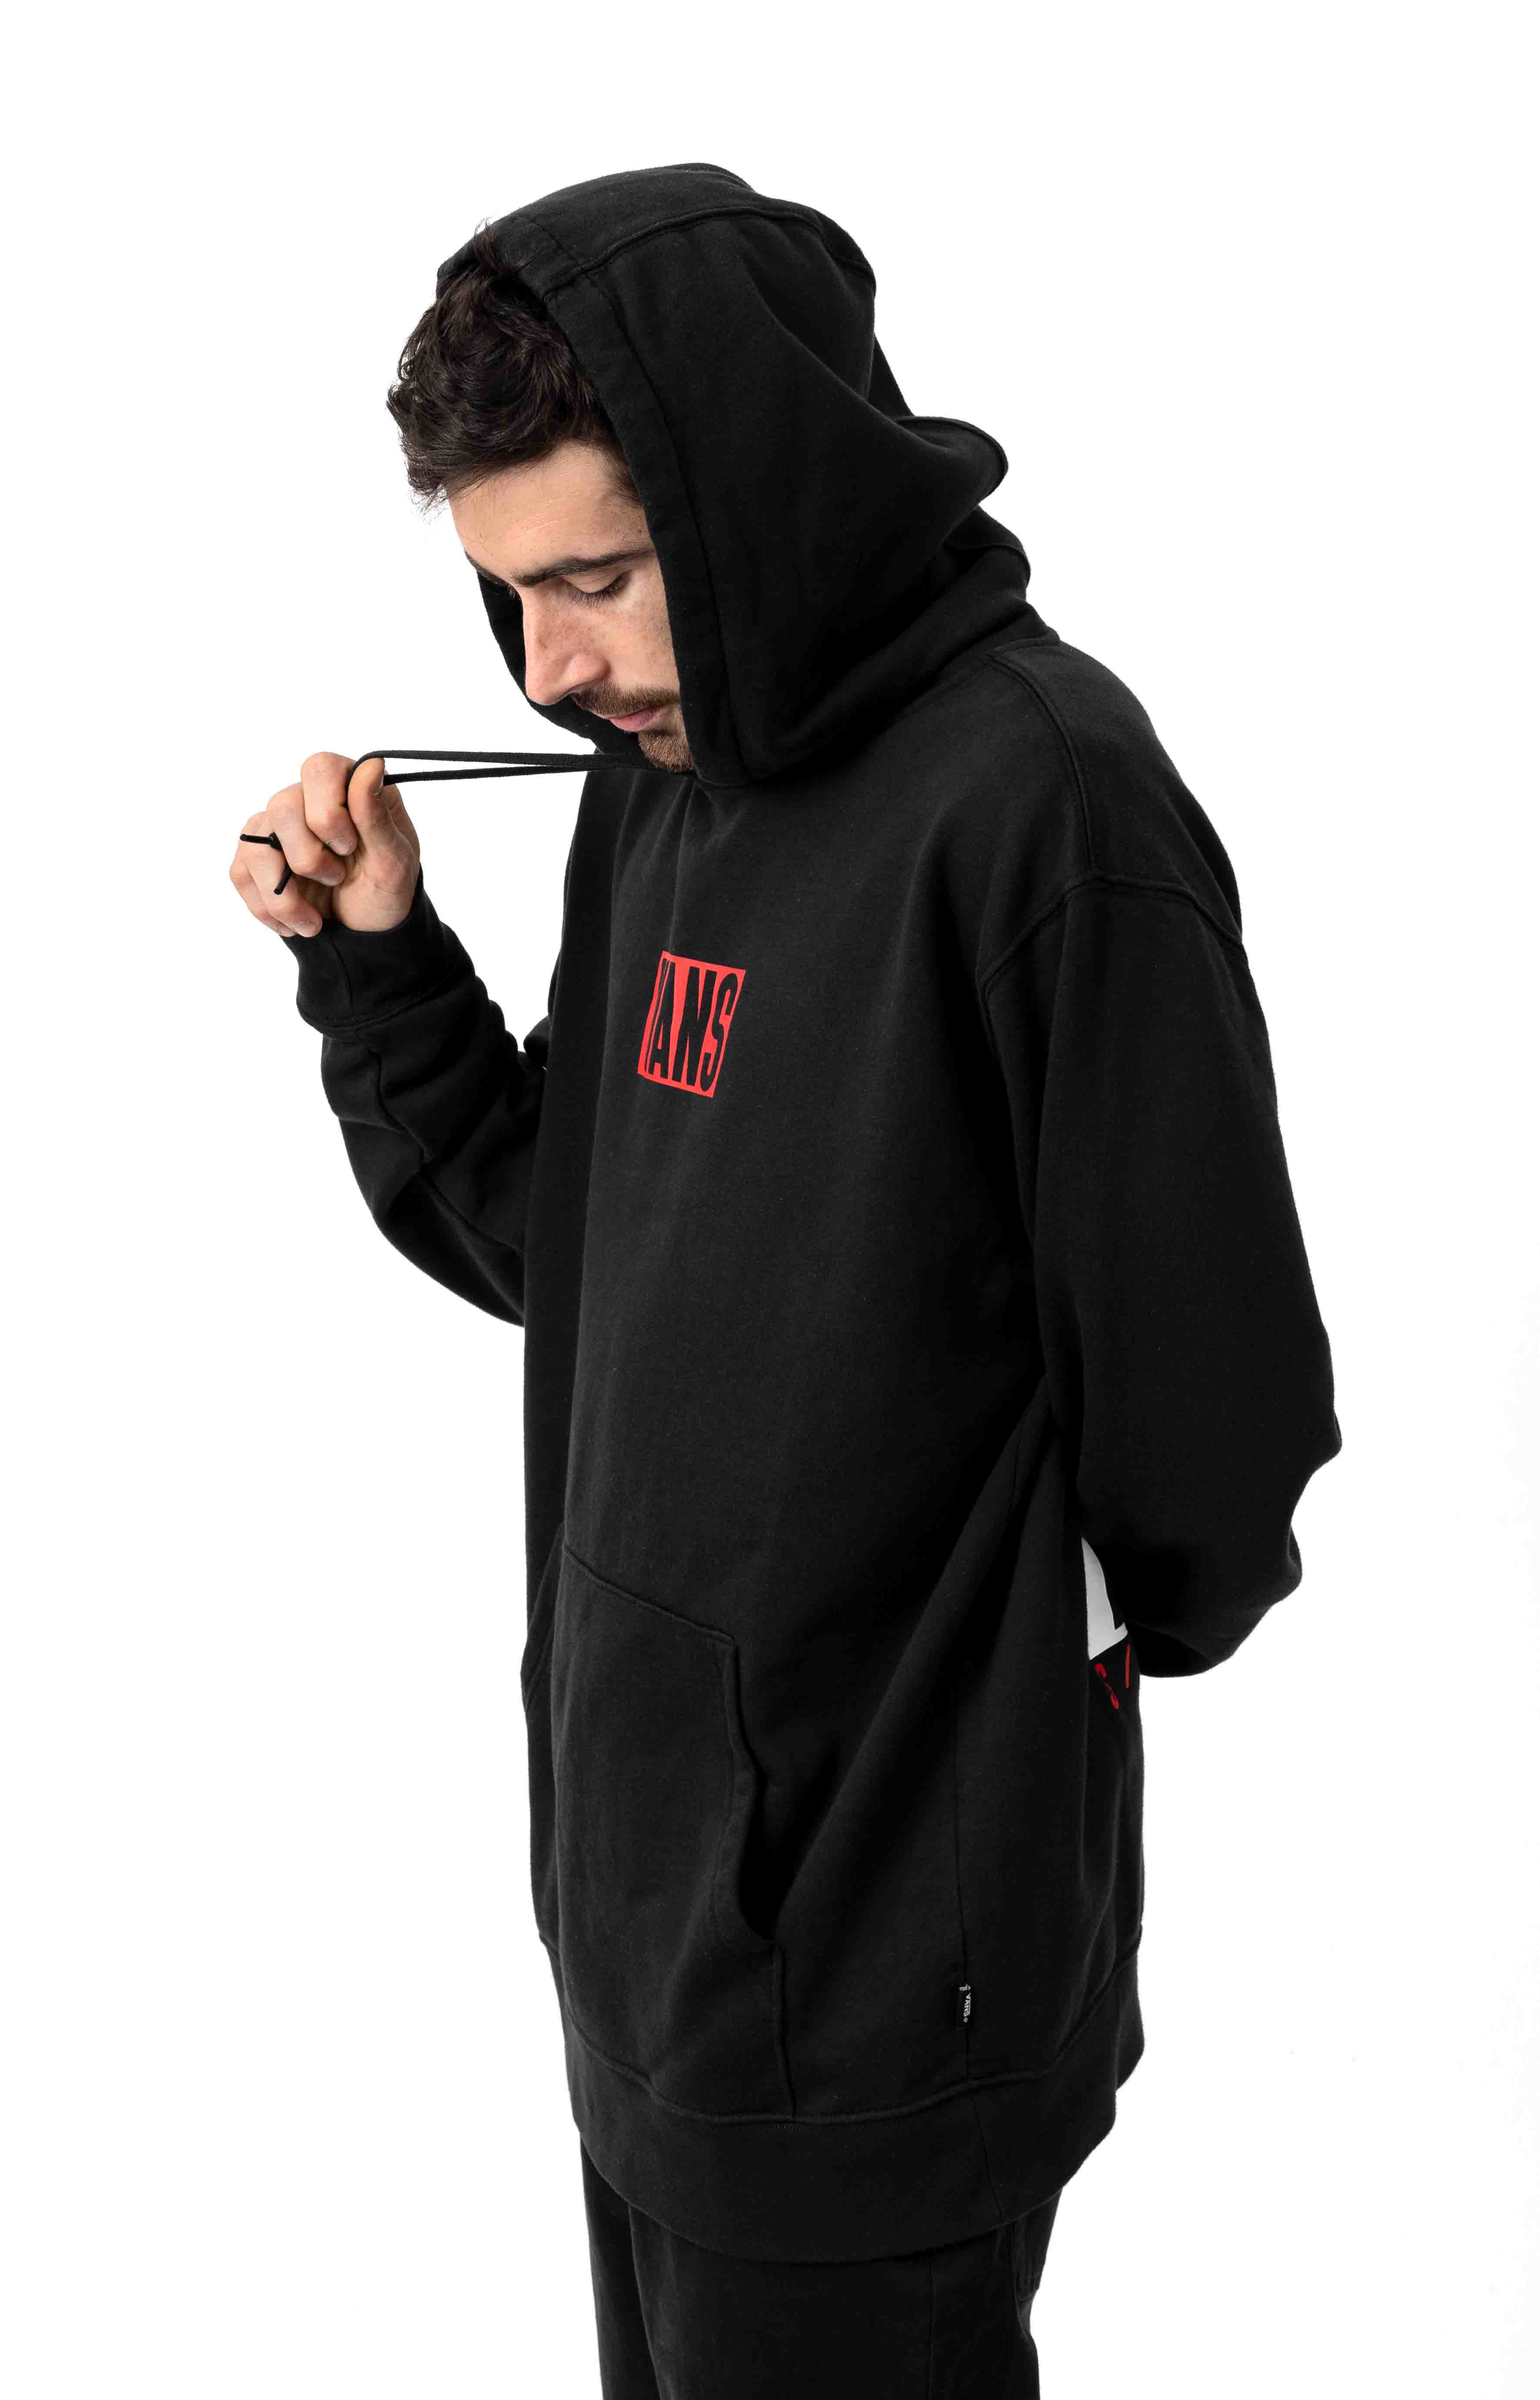 New Stax Pullover Hoodie - Black 2